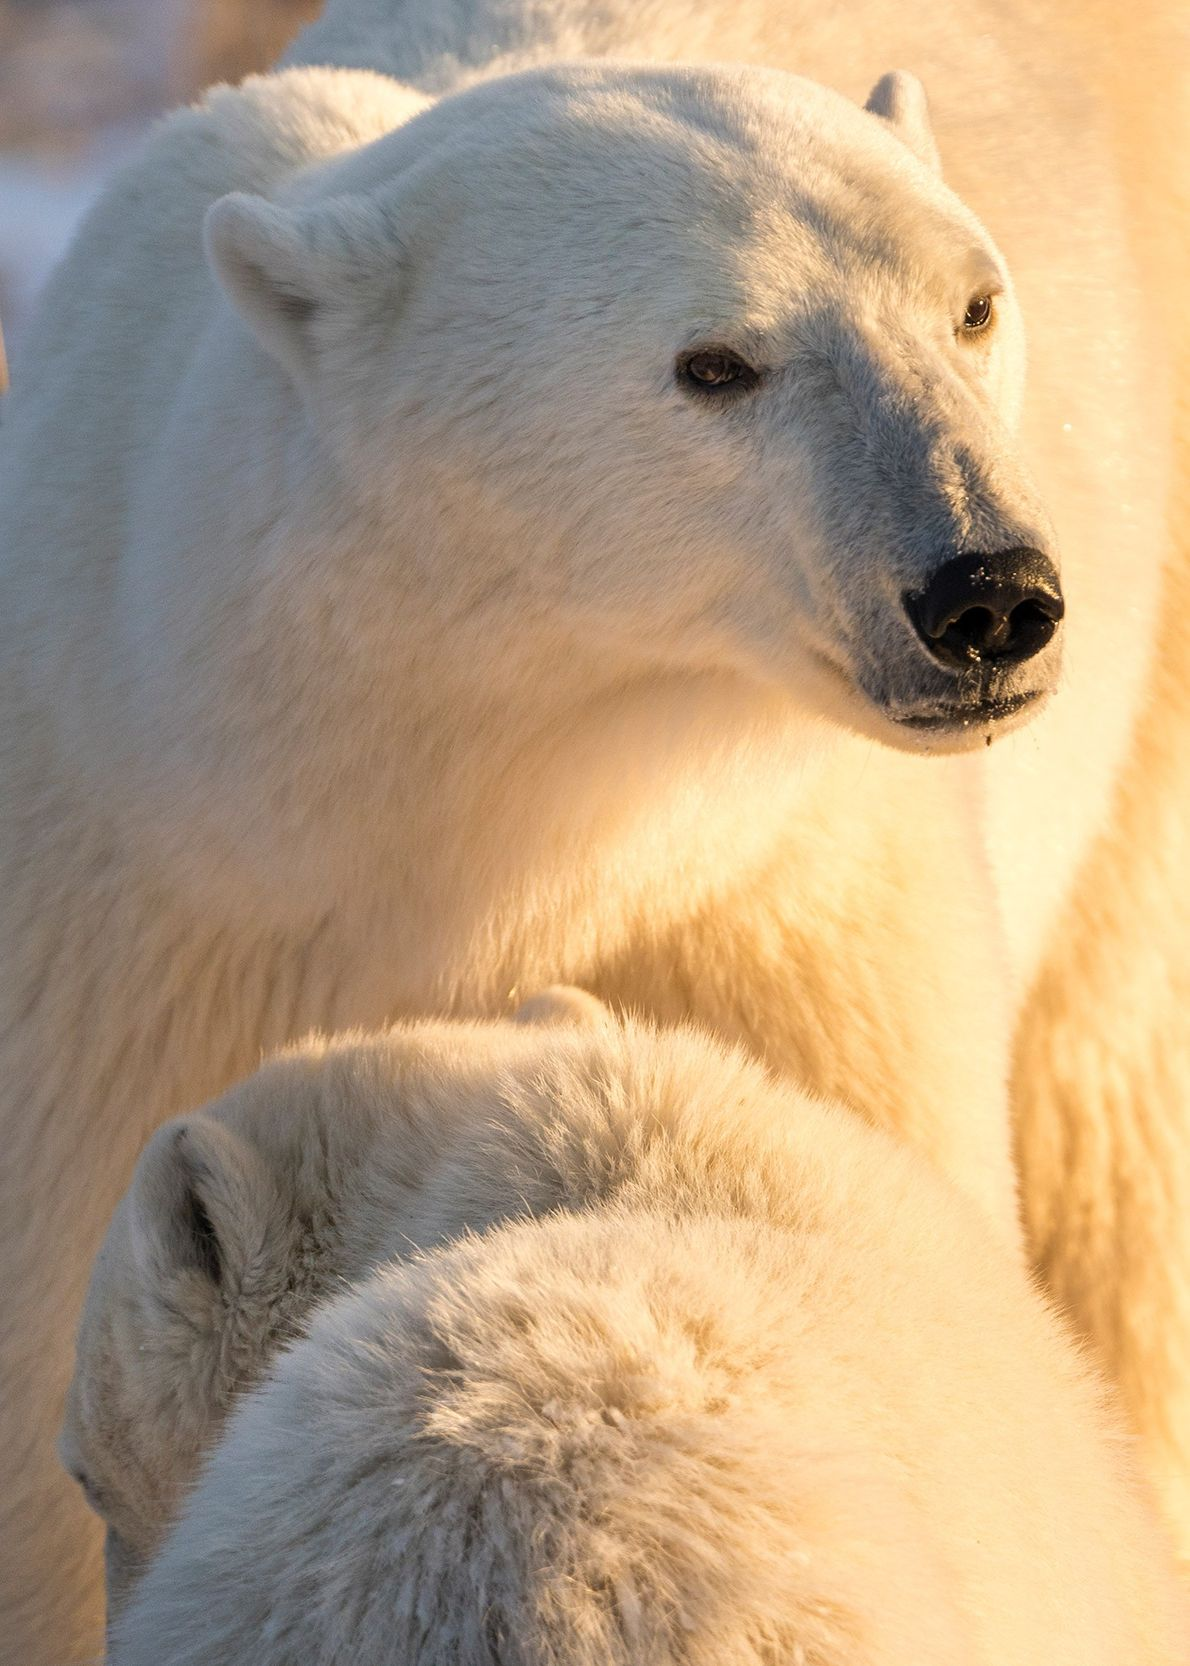 A polar bear mother and cub brace against bitter cold near Hudson Bay, Canada. Lau and ...